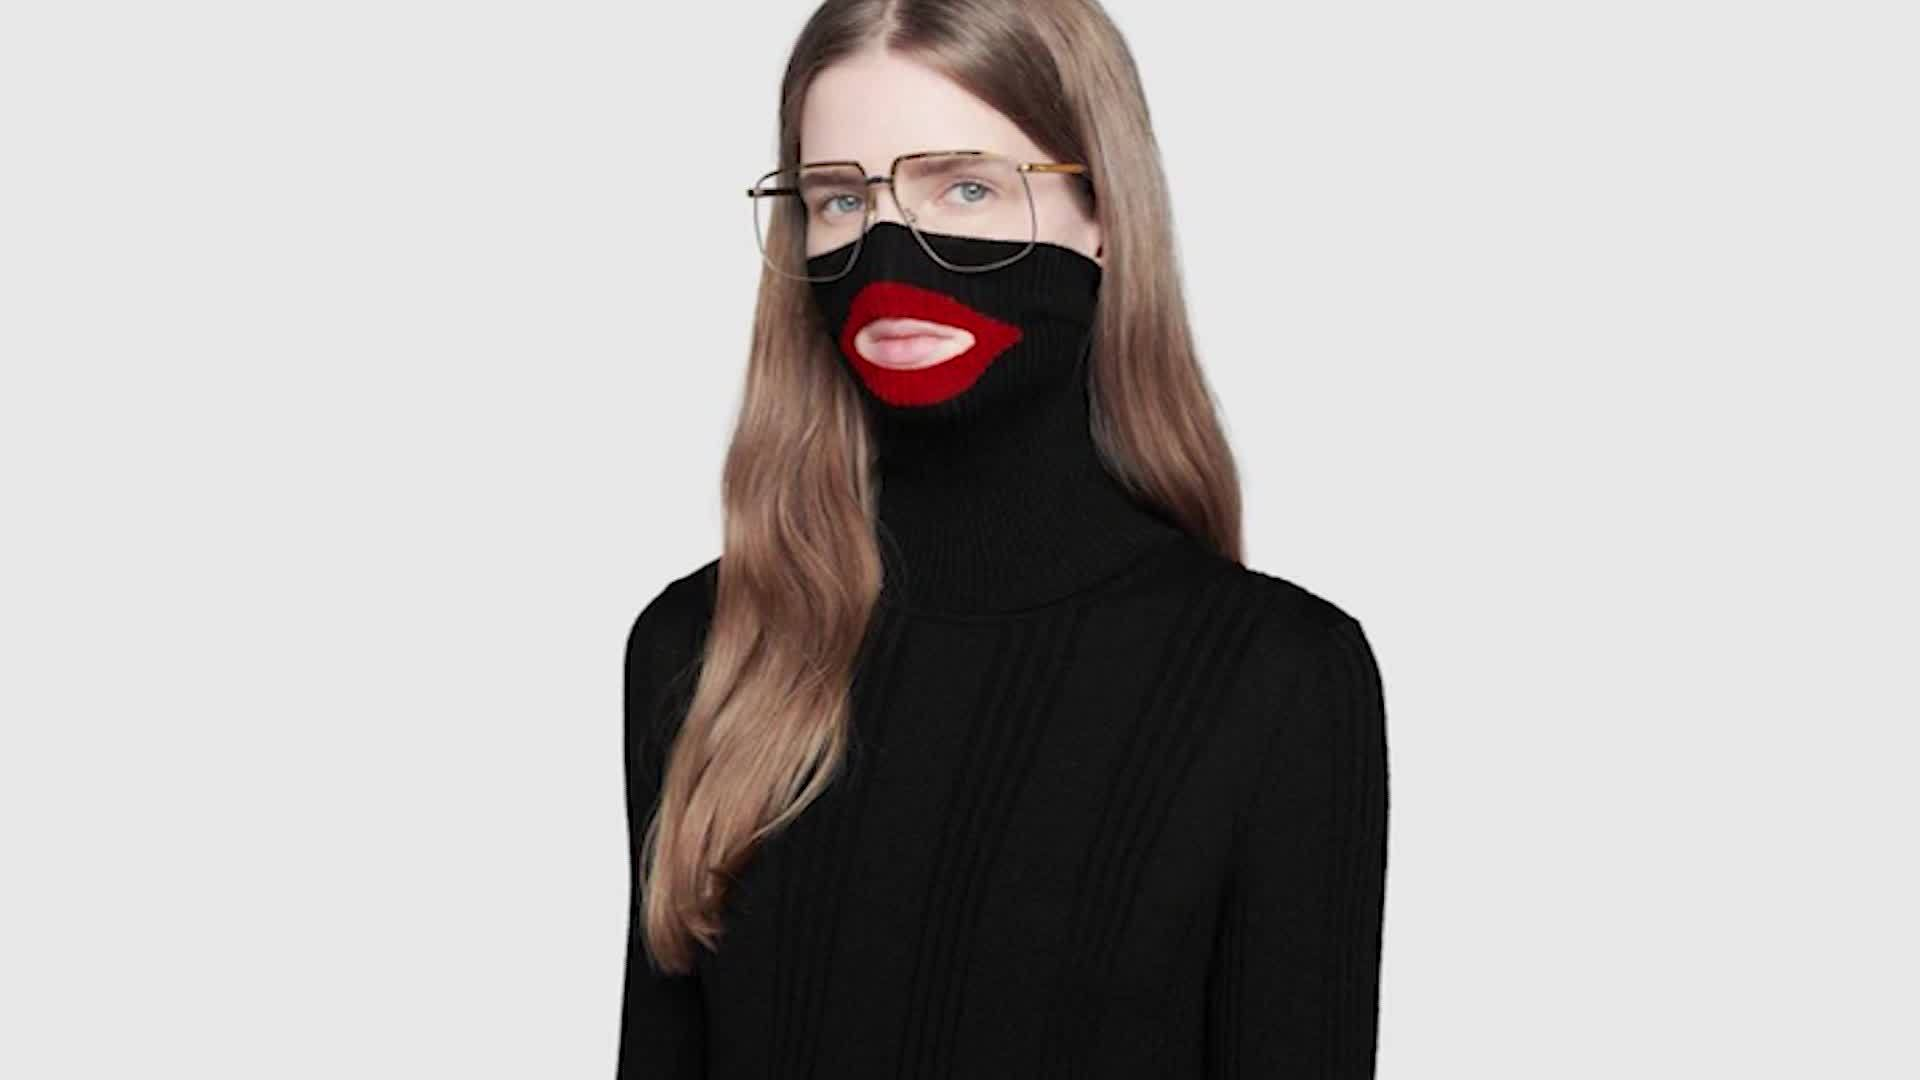 Gucci_apologizes_after__blackface__sweat_6_20190207131019-846653543